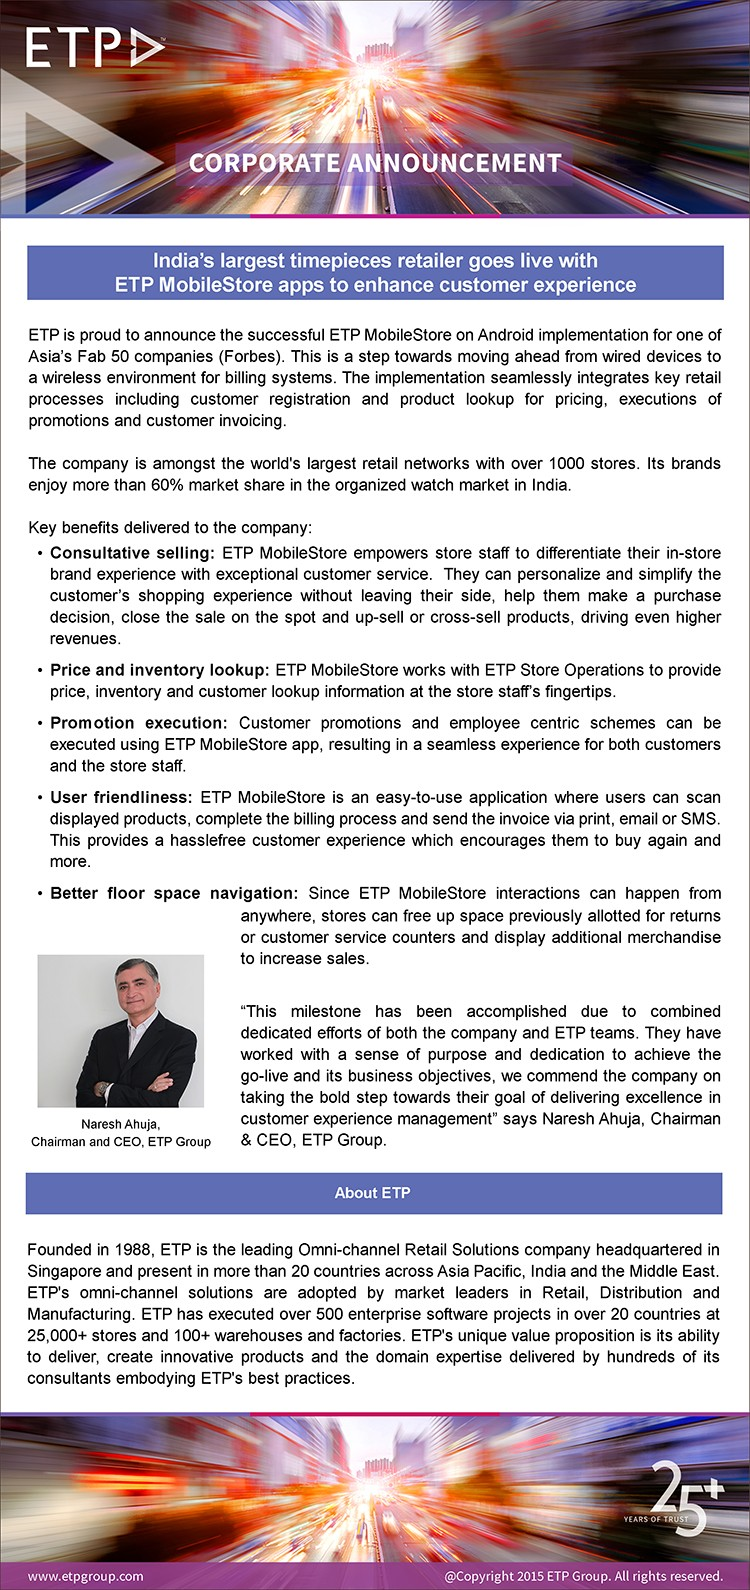 India's largest timepieces retailer goes live with ETP MobileStore to enhance customer experience